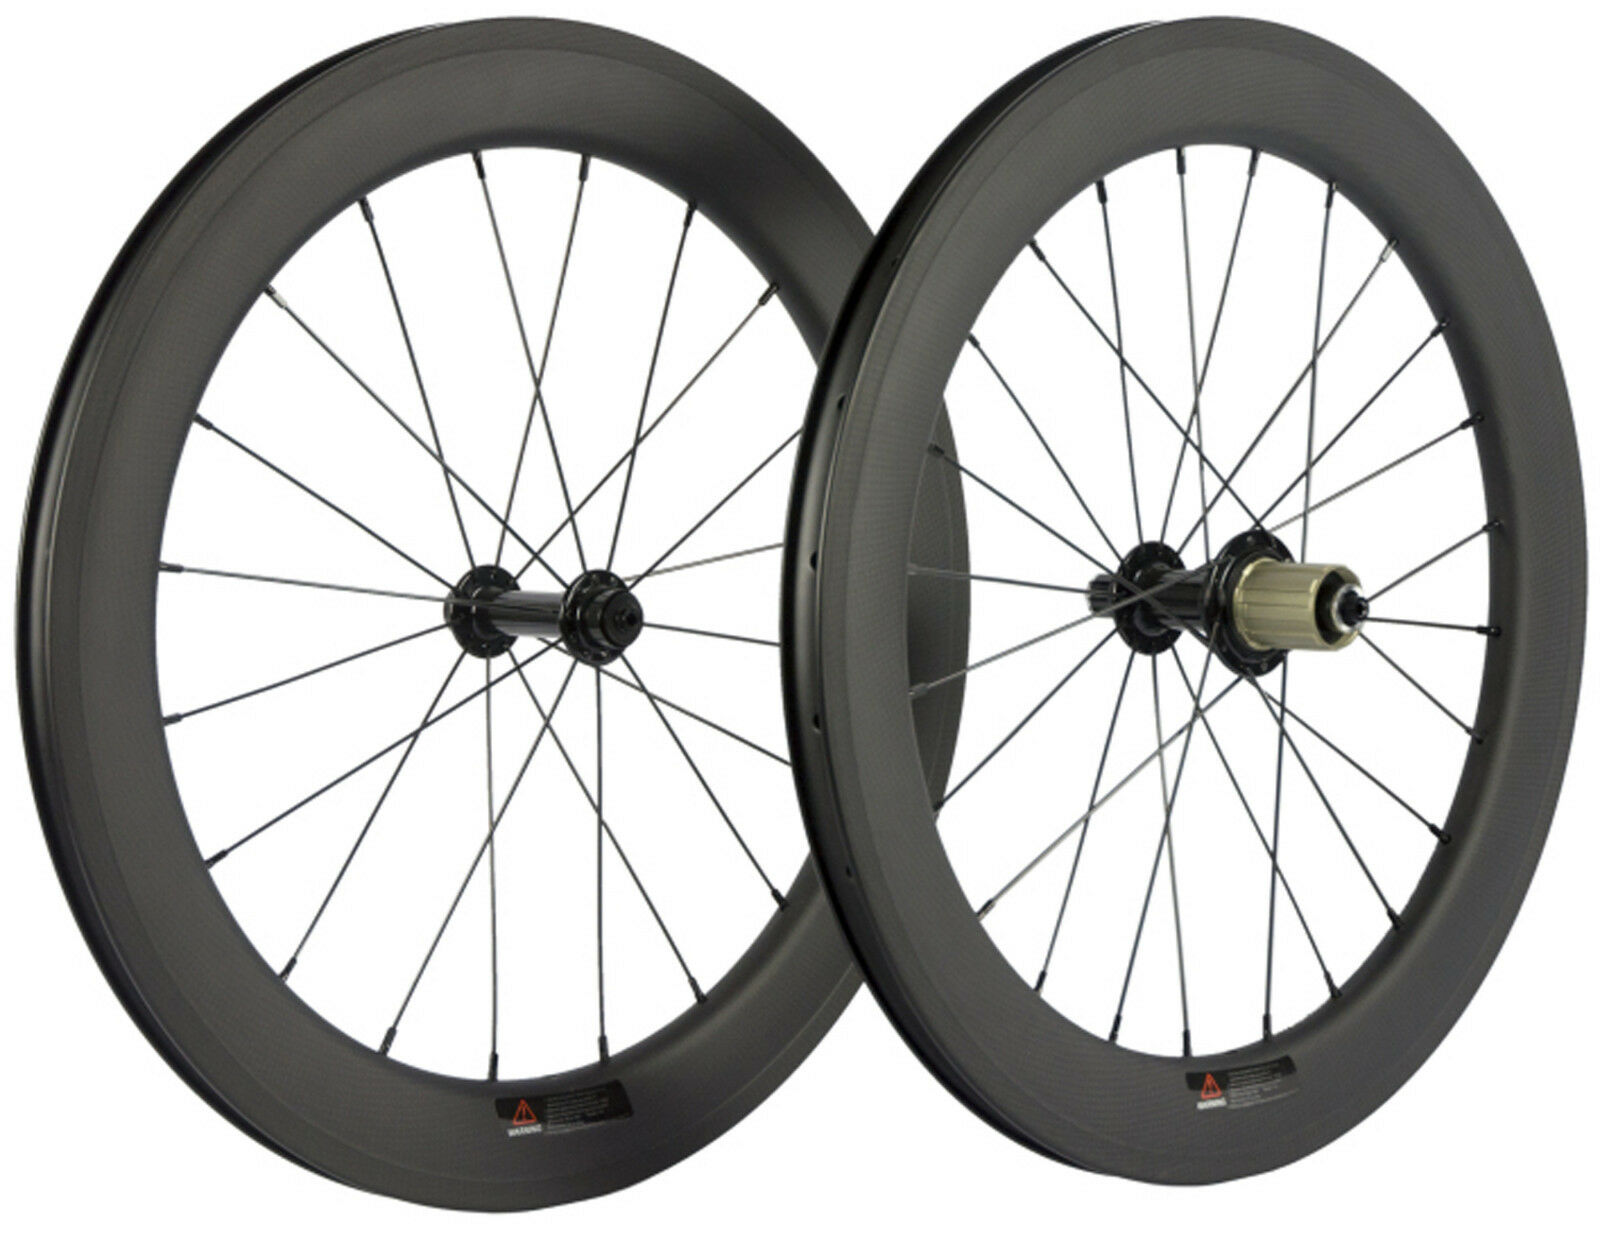 451C Road  Bike Wheels 50mm BMX Carbon Bicycyle Wheelset Cycling Touring Wheels  offering 100%